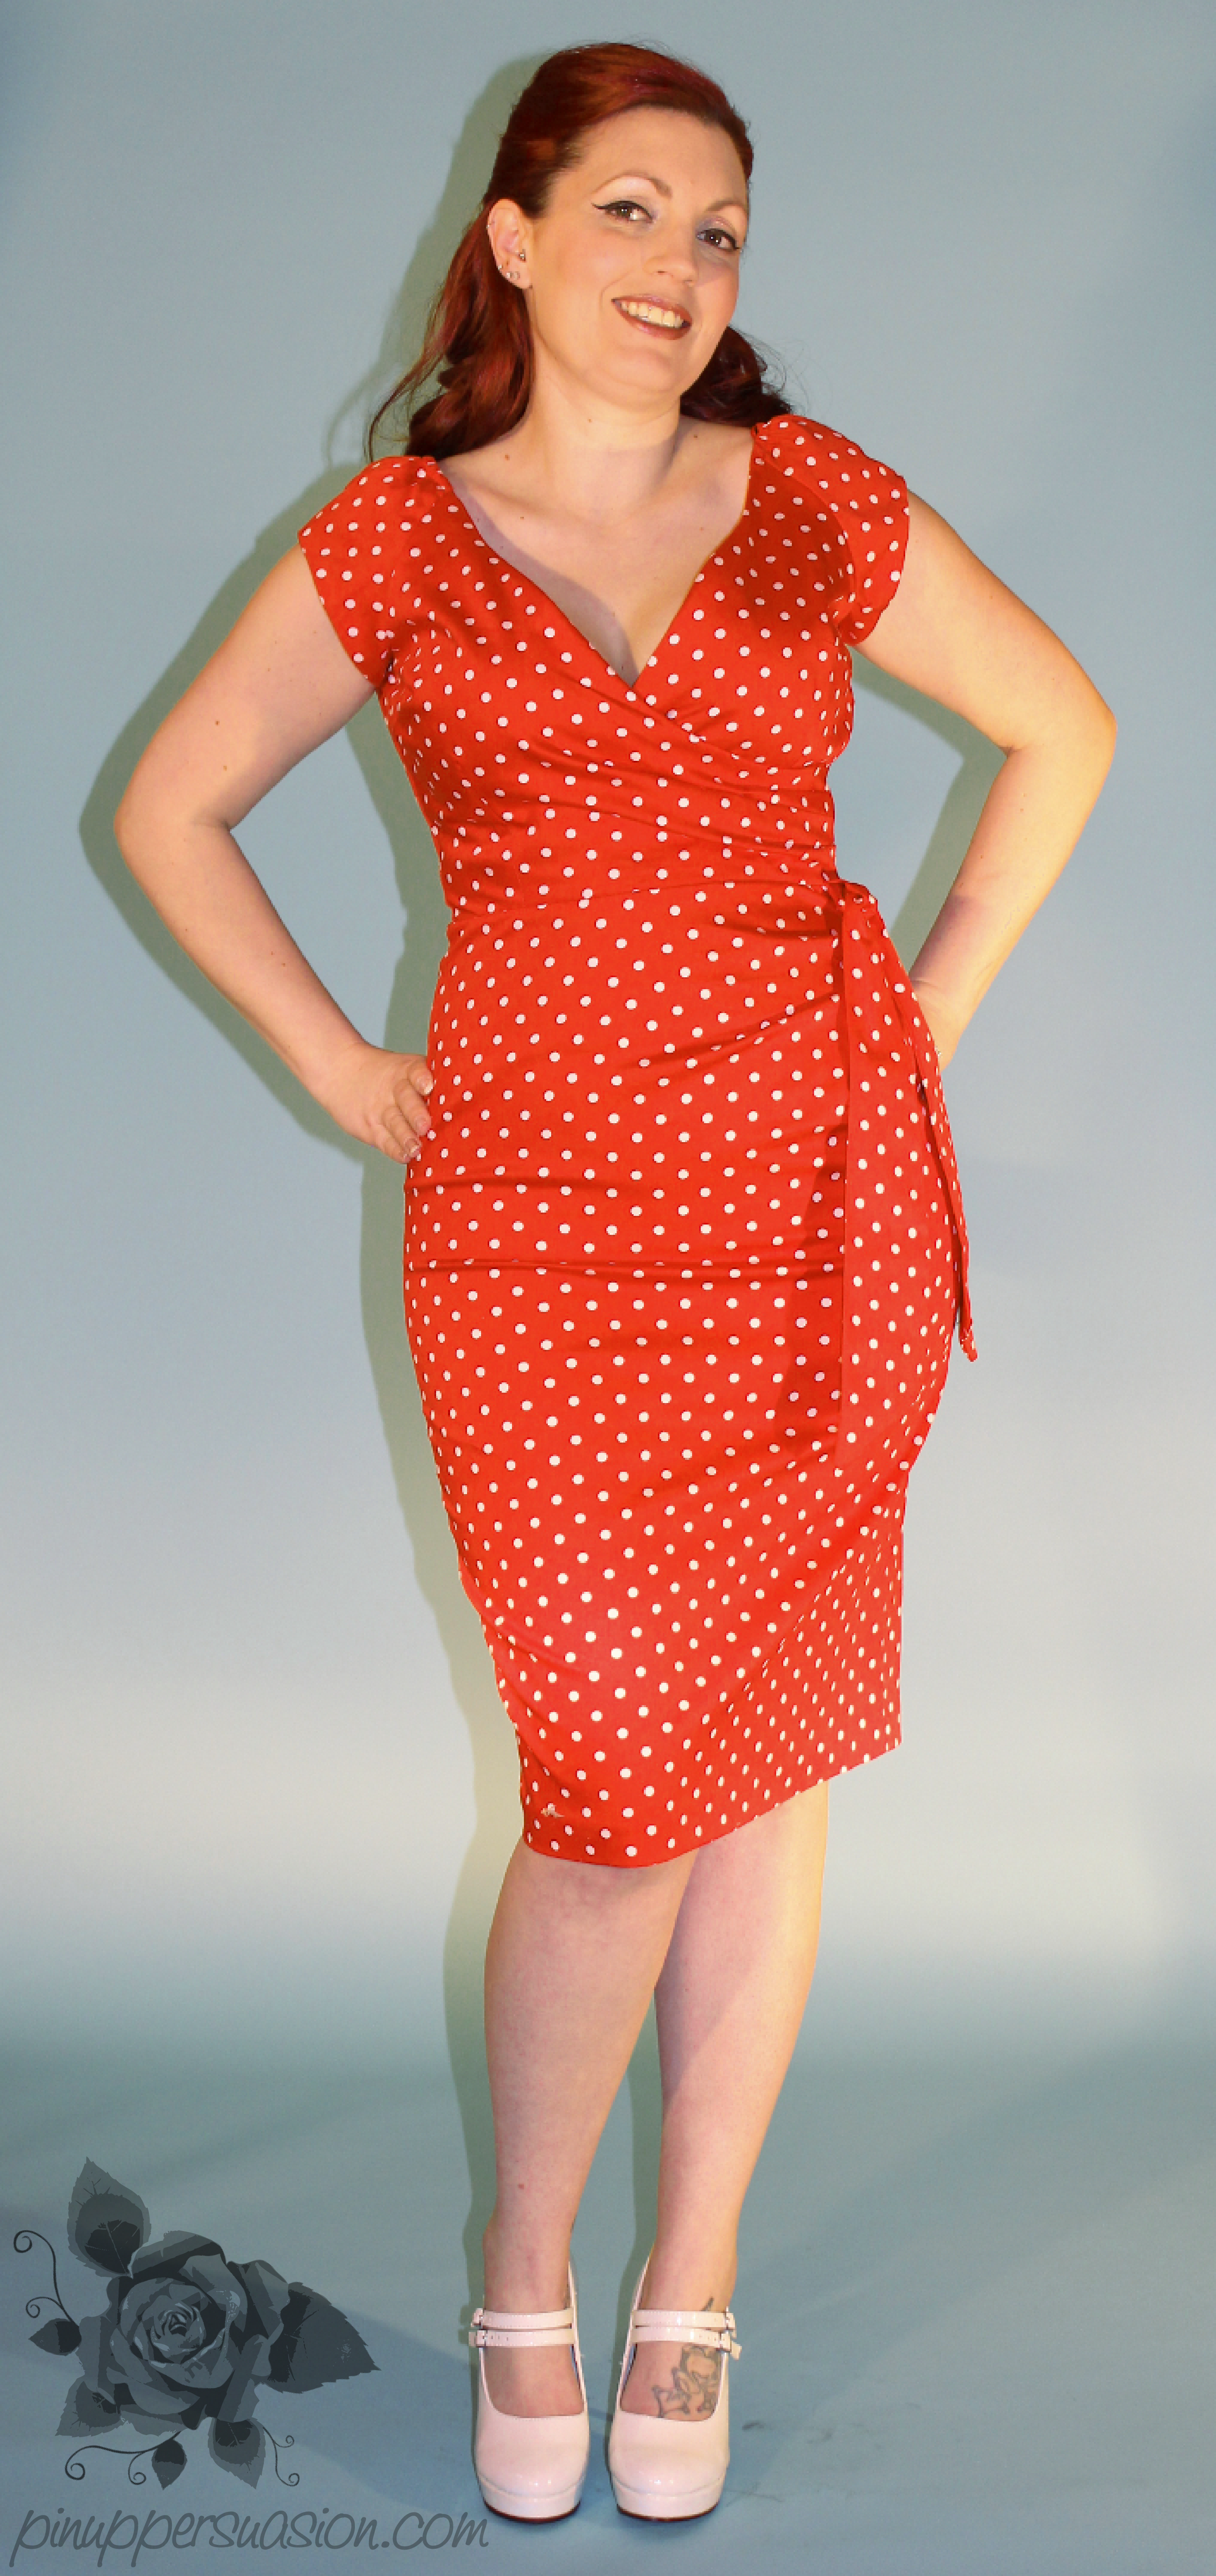 The Pretty Dress Company | Pin Up Persuasion